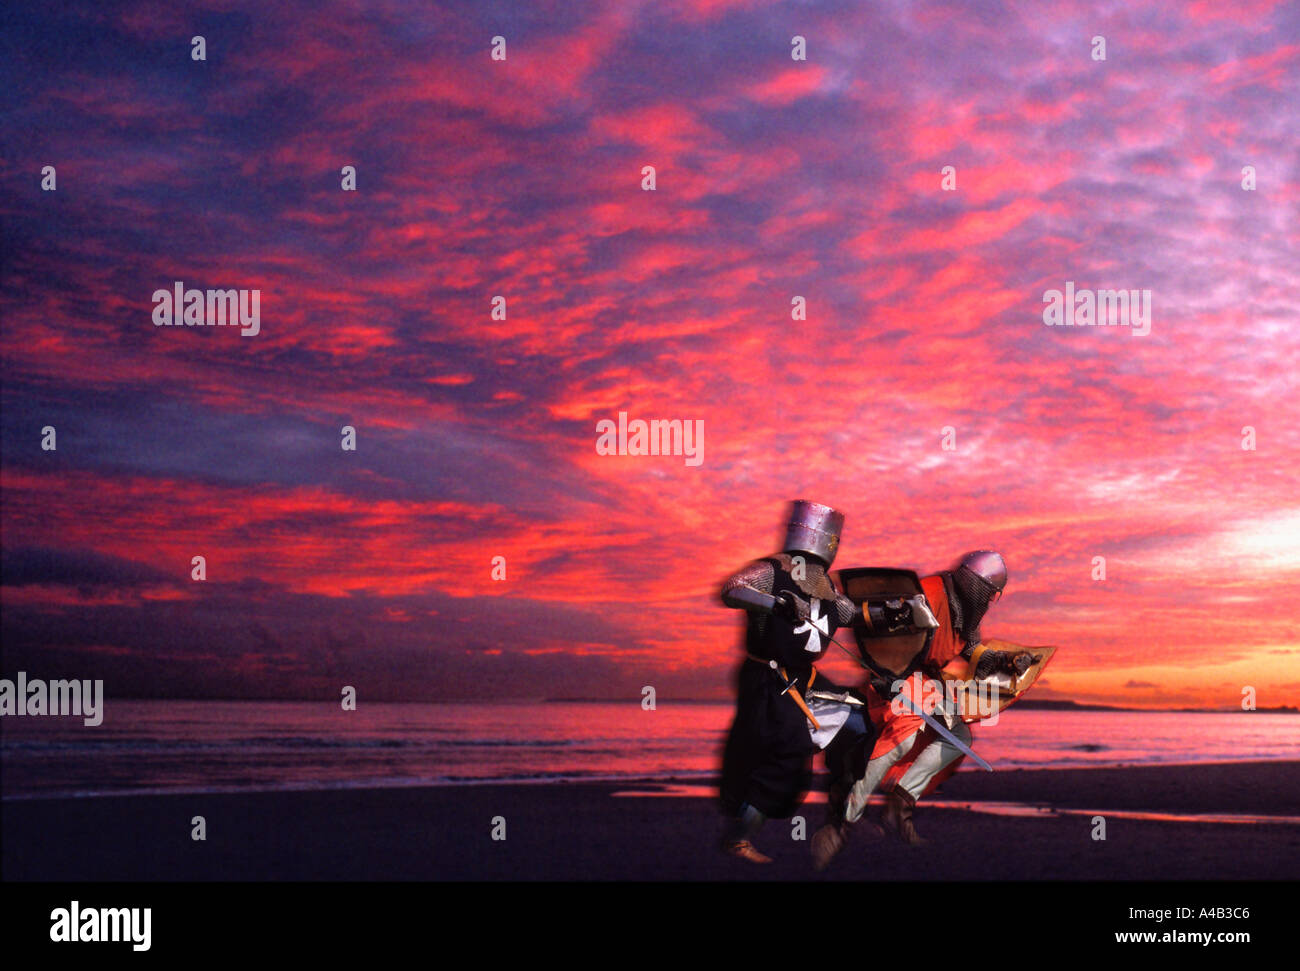 Knights dual. Dramatic battle fight on beach with blood red sunset. FOR EDITORIAL USE ONLY. - Stock Image